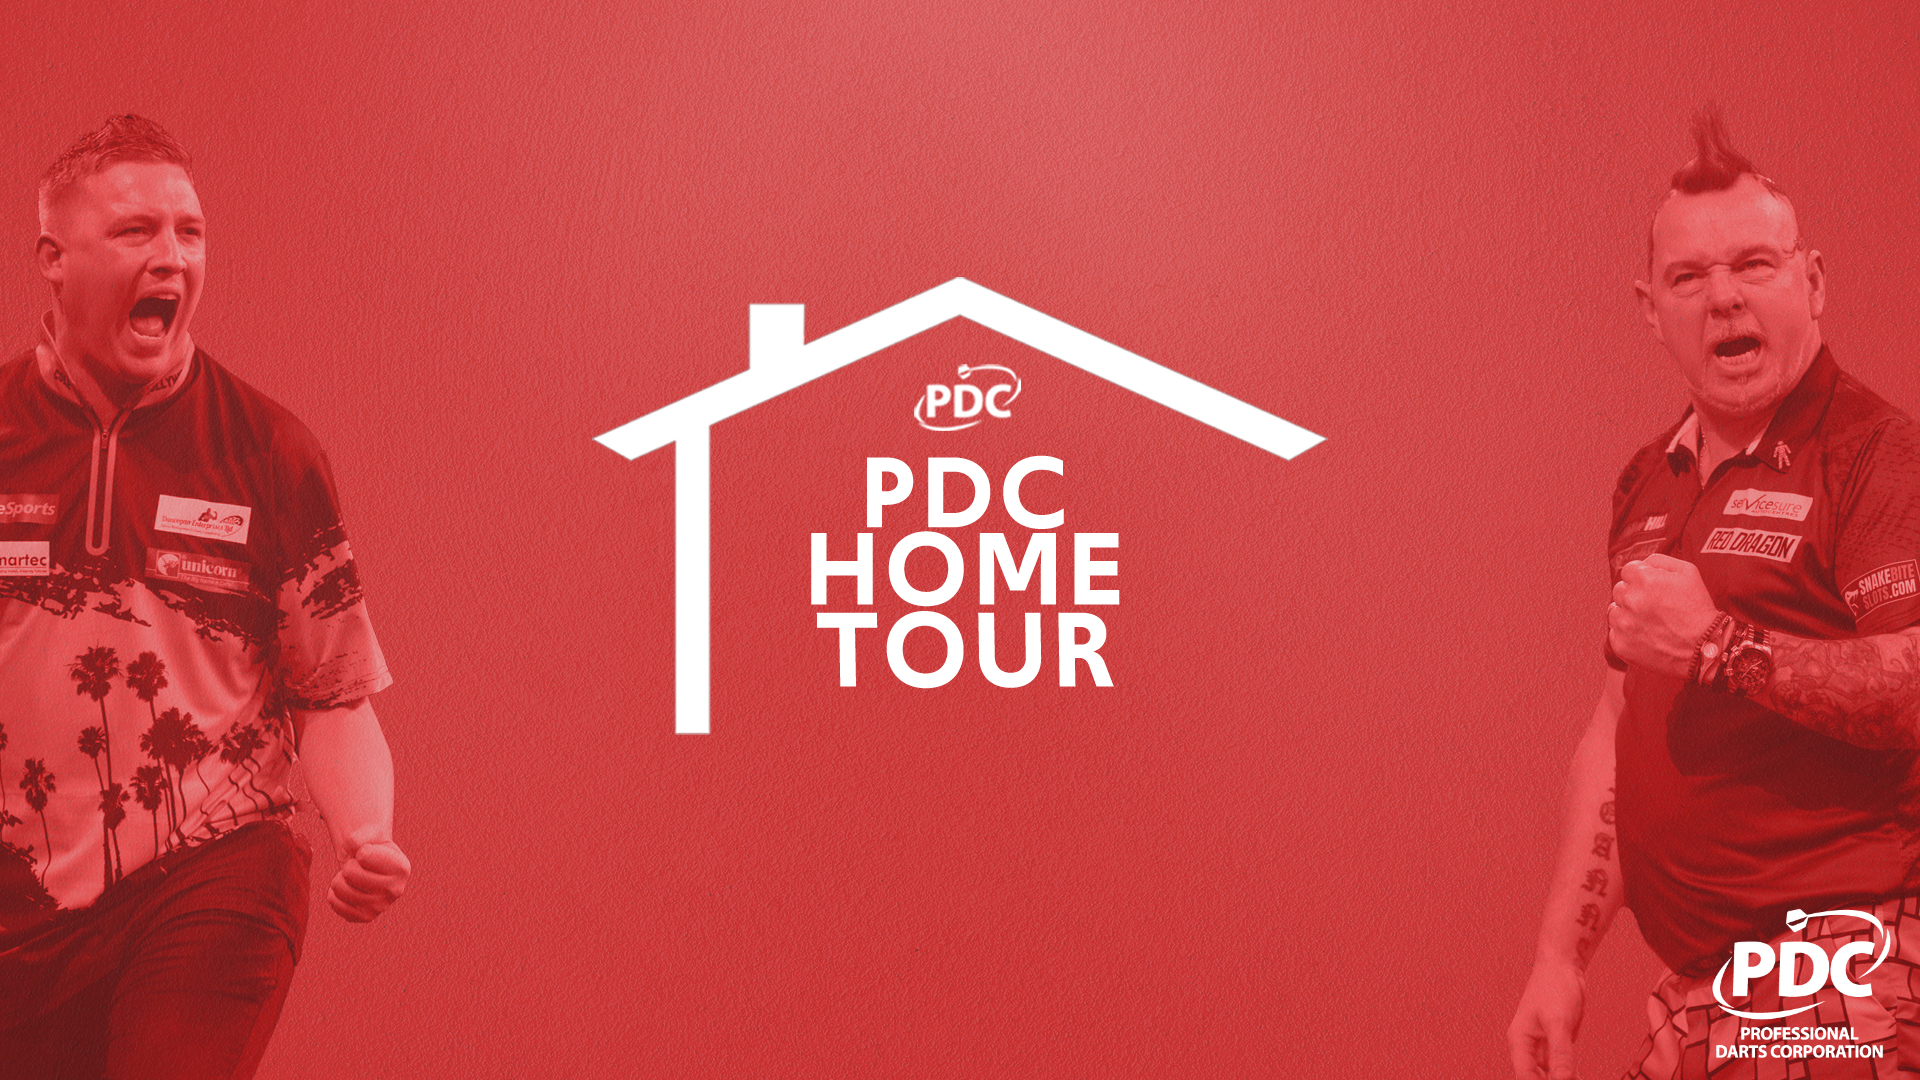 Pdc Home